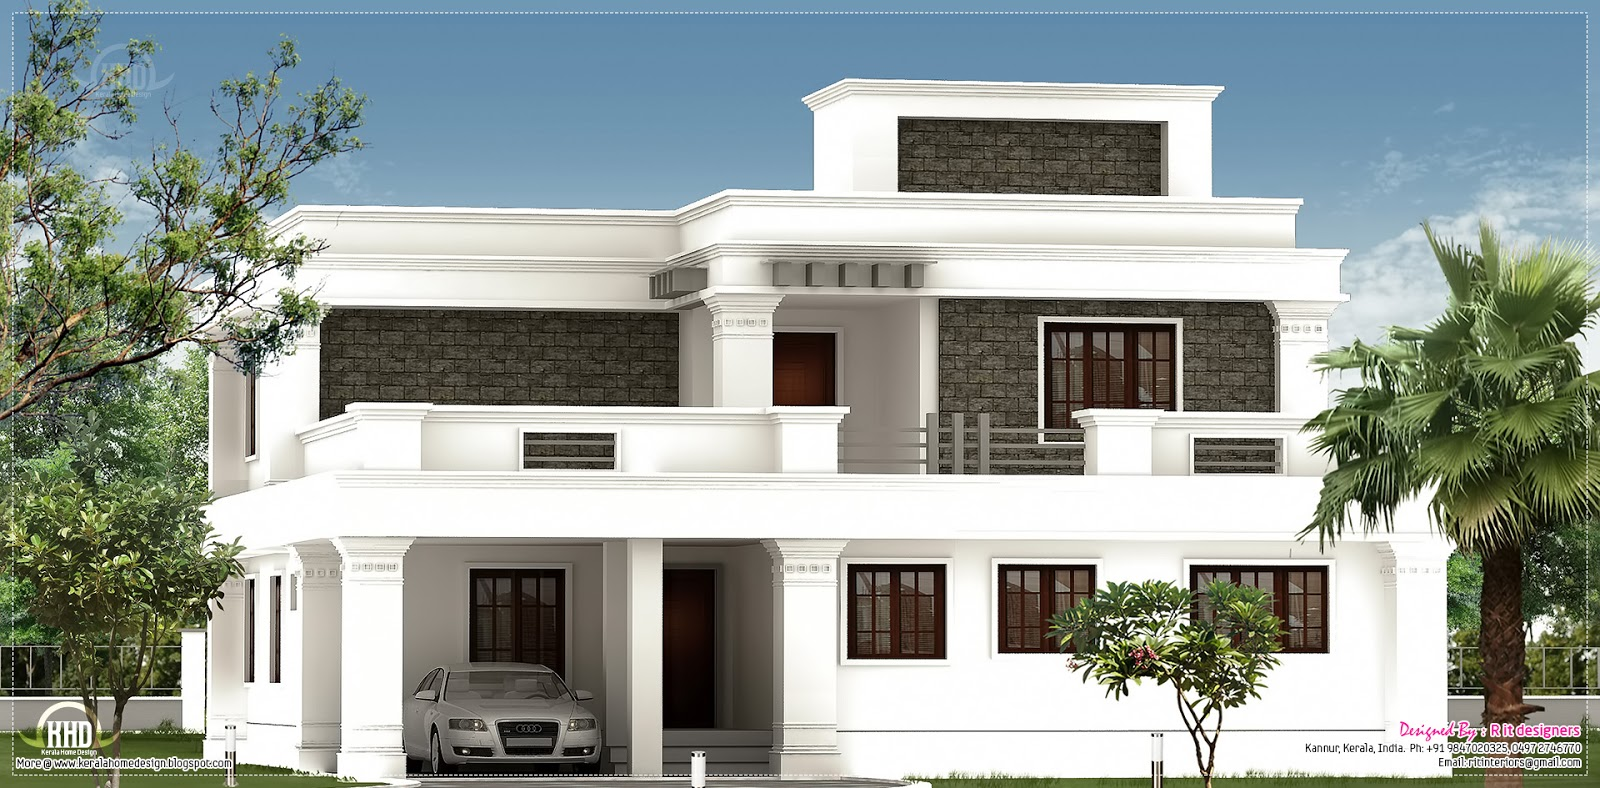 House plans flat roof designs flat roof house designs for Bungalow roof styles